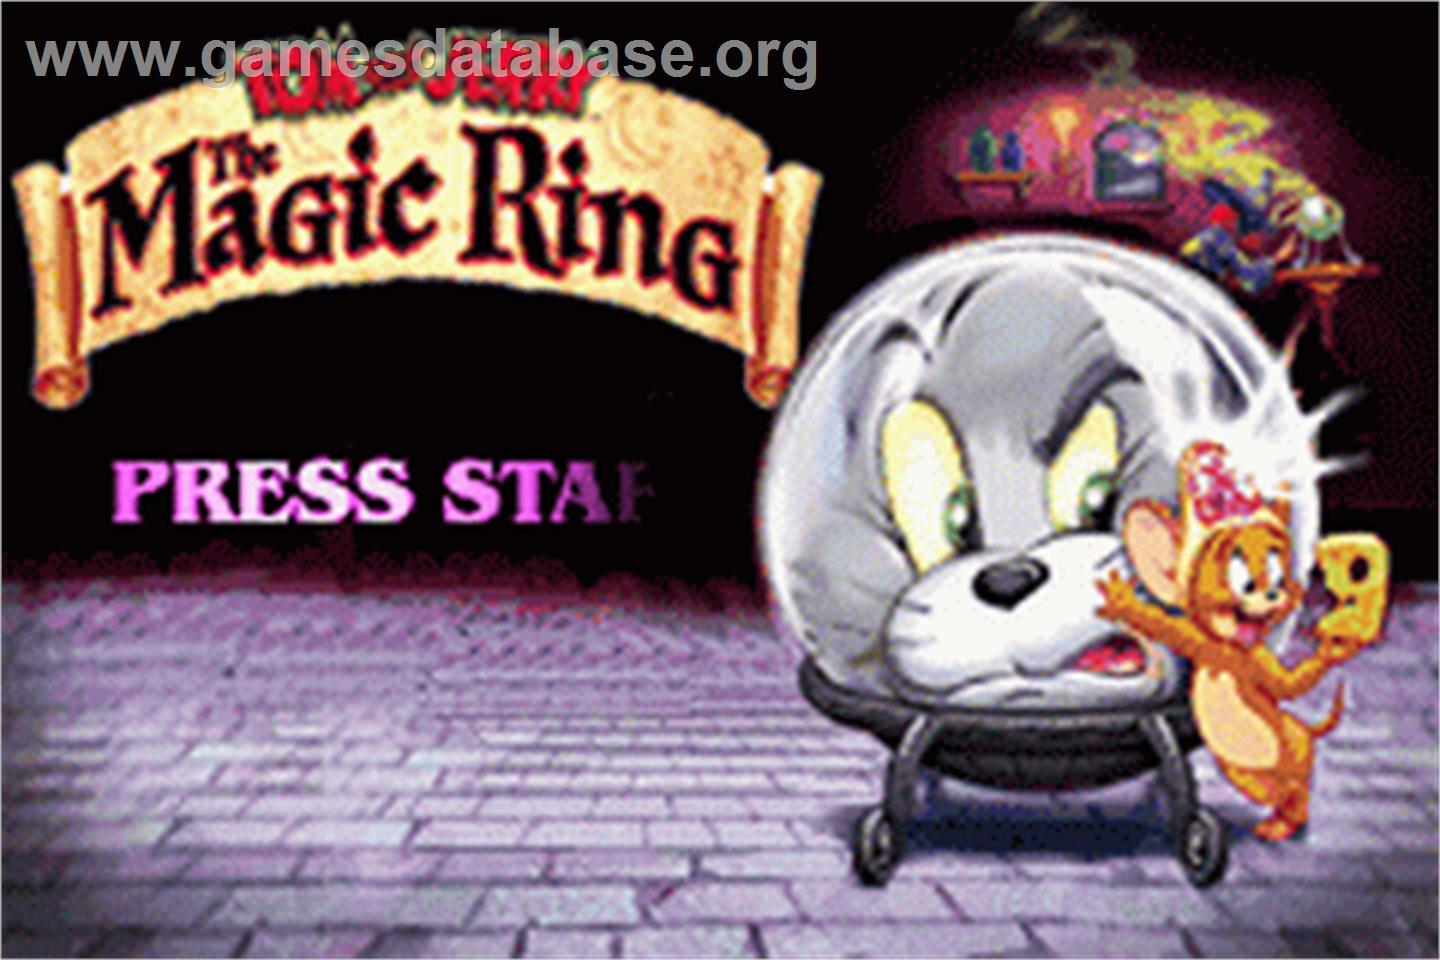 Tom and Jerry Magic Ring